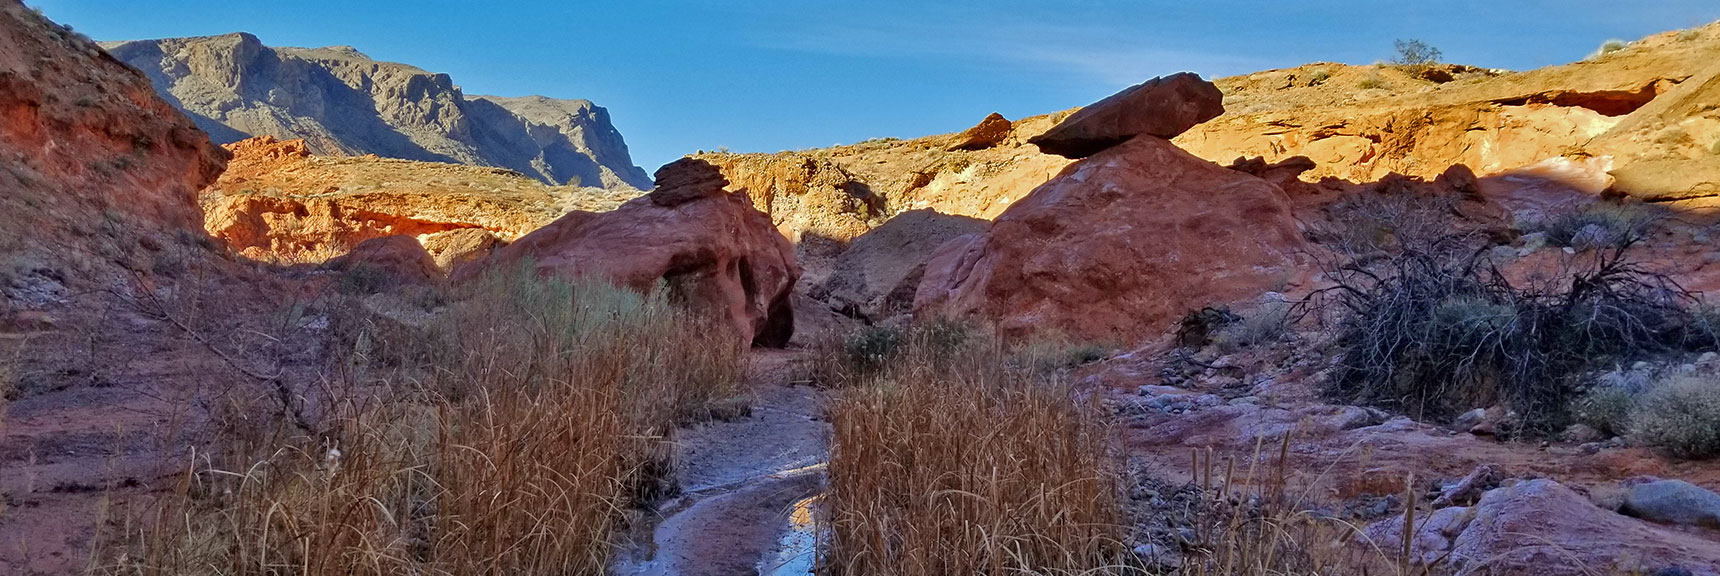 Approaching the Oasis on Charlie's Spring Trail, Valley of Fire State Park, Nevada